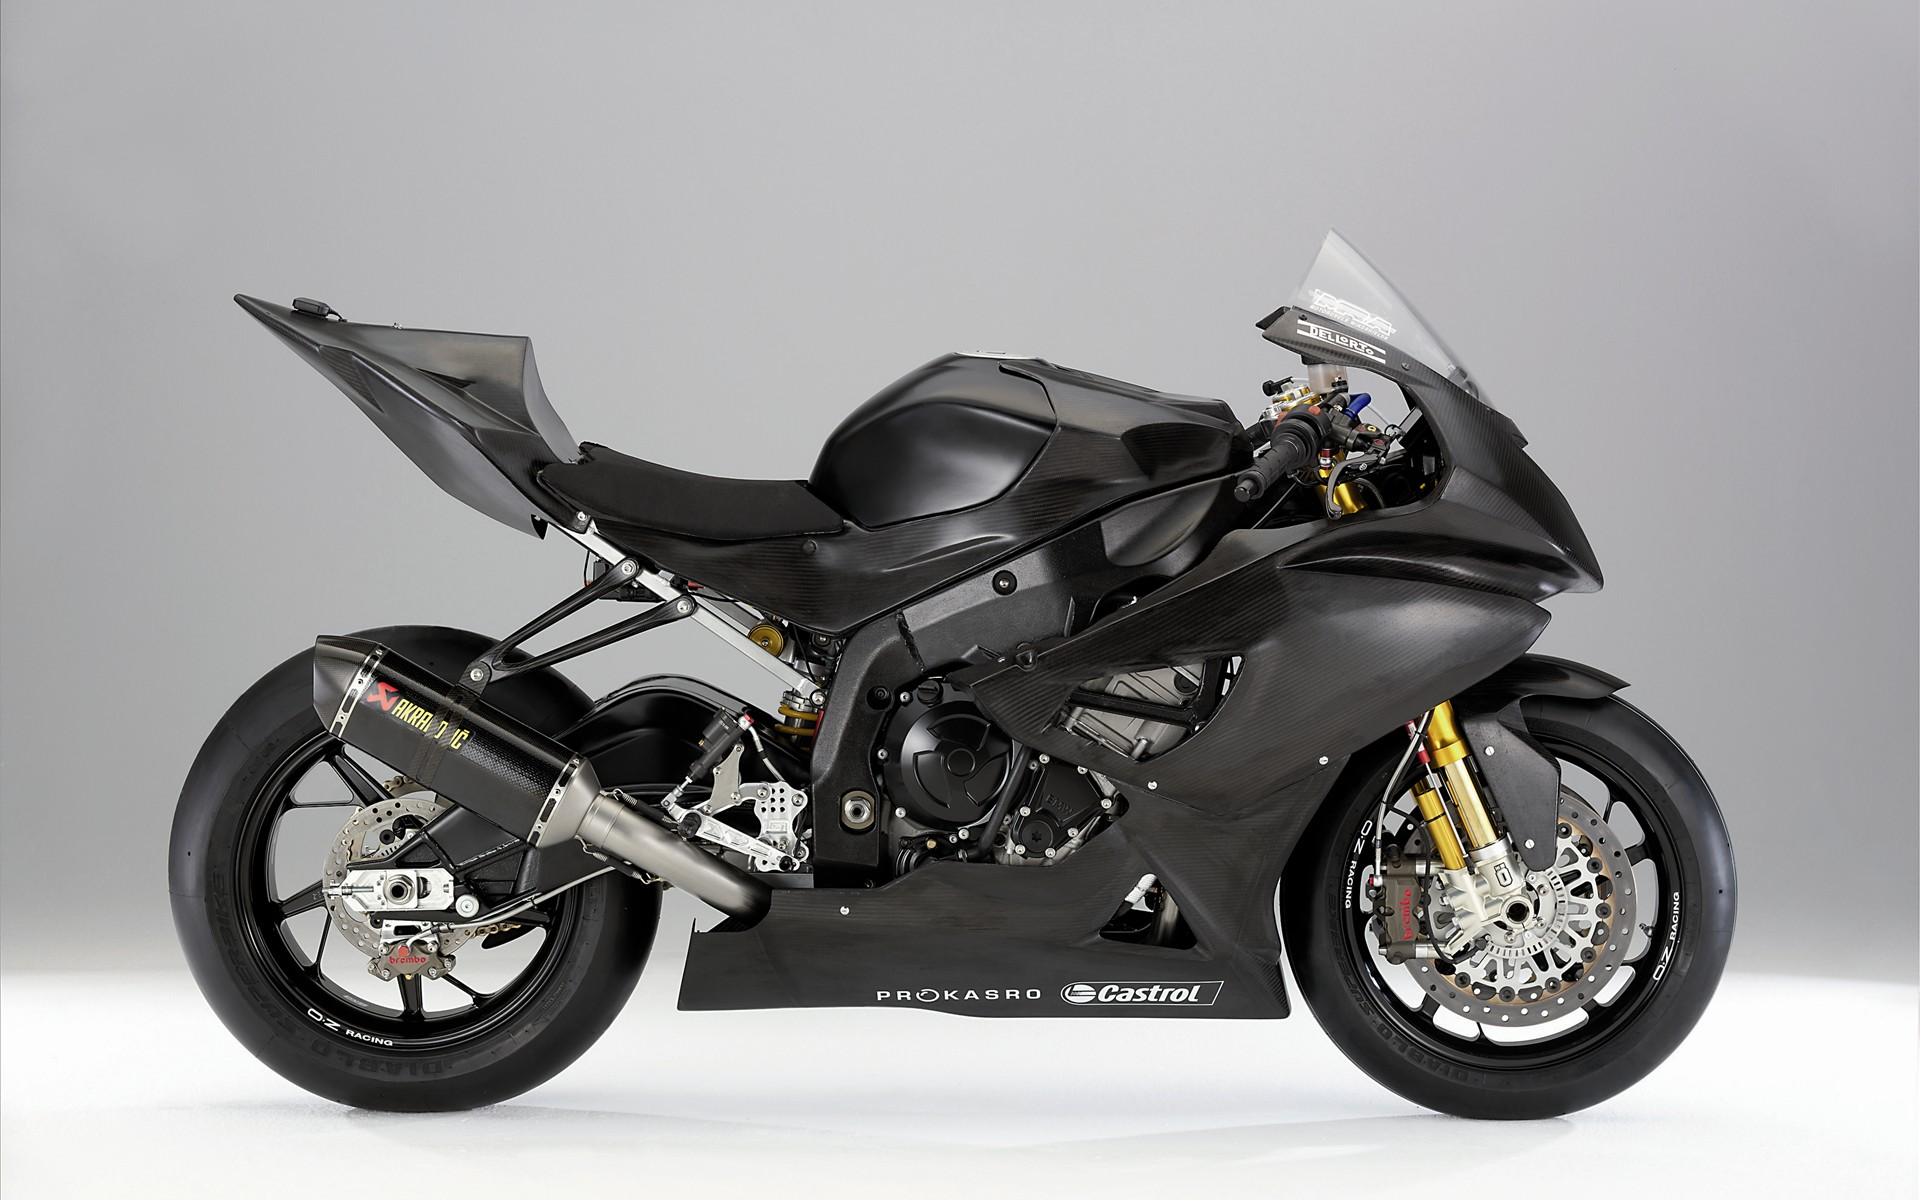 BMW S 1000 RR Black 331.19 Kb